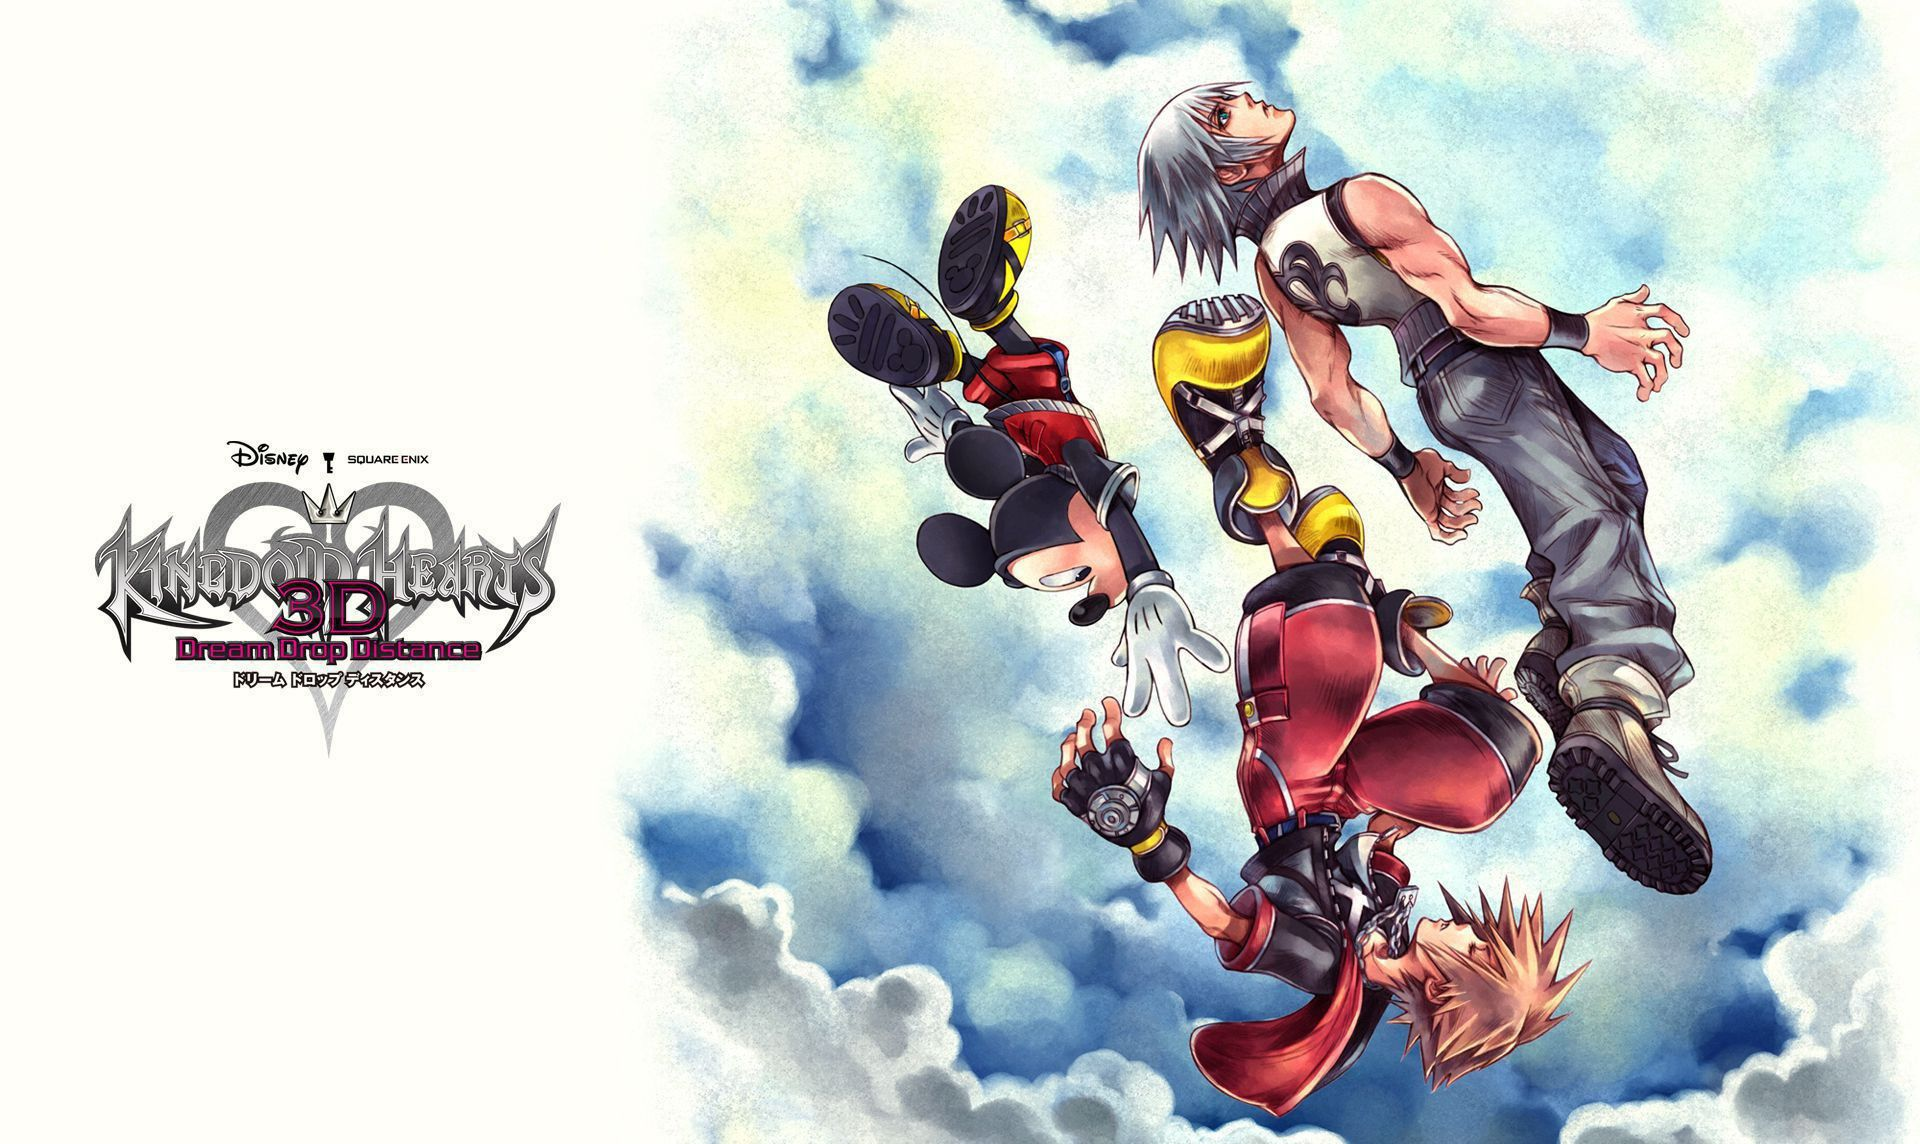 Kingdom Hearts 3 Tumblr